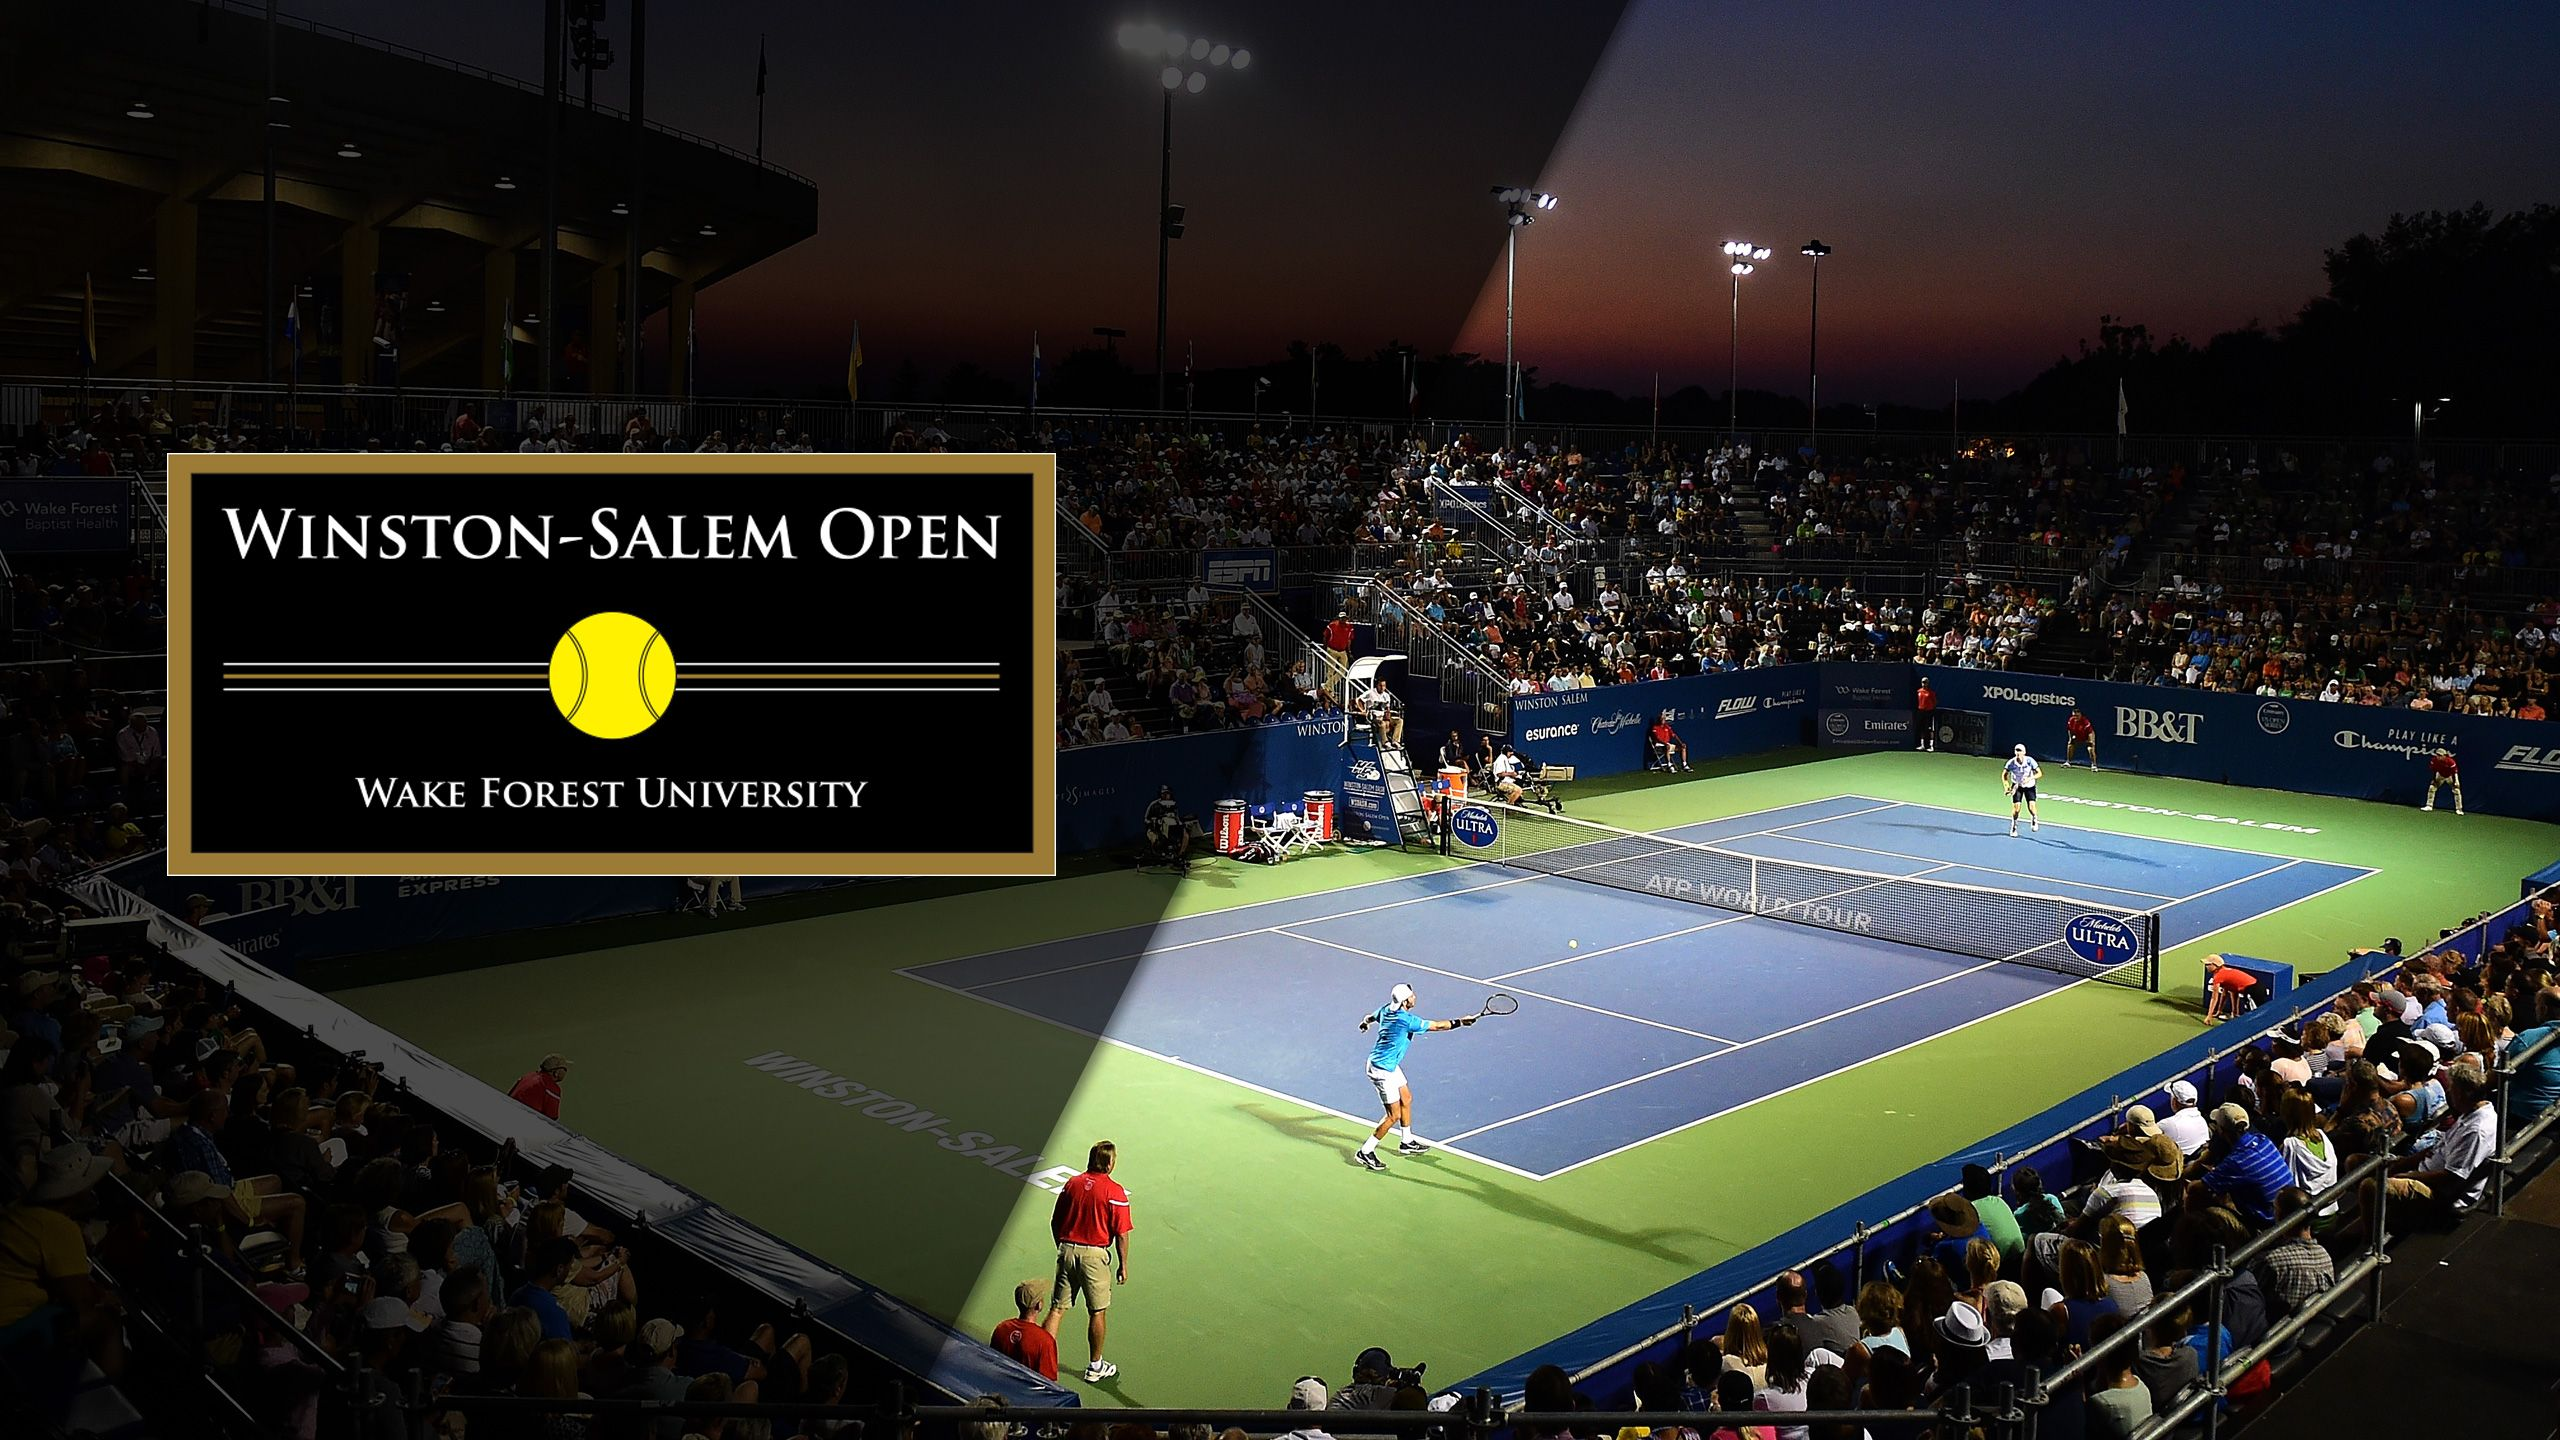 2017 US Open Series - Winston-Salem Open (First Round)